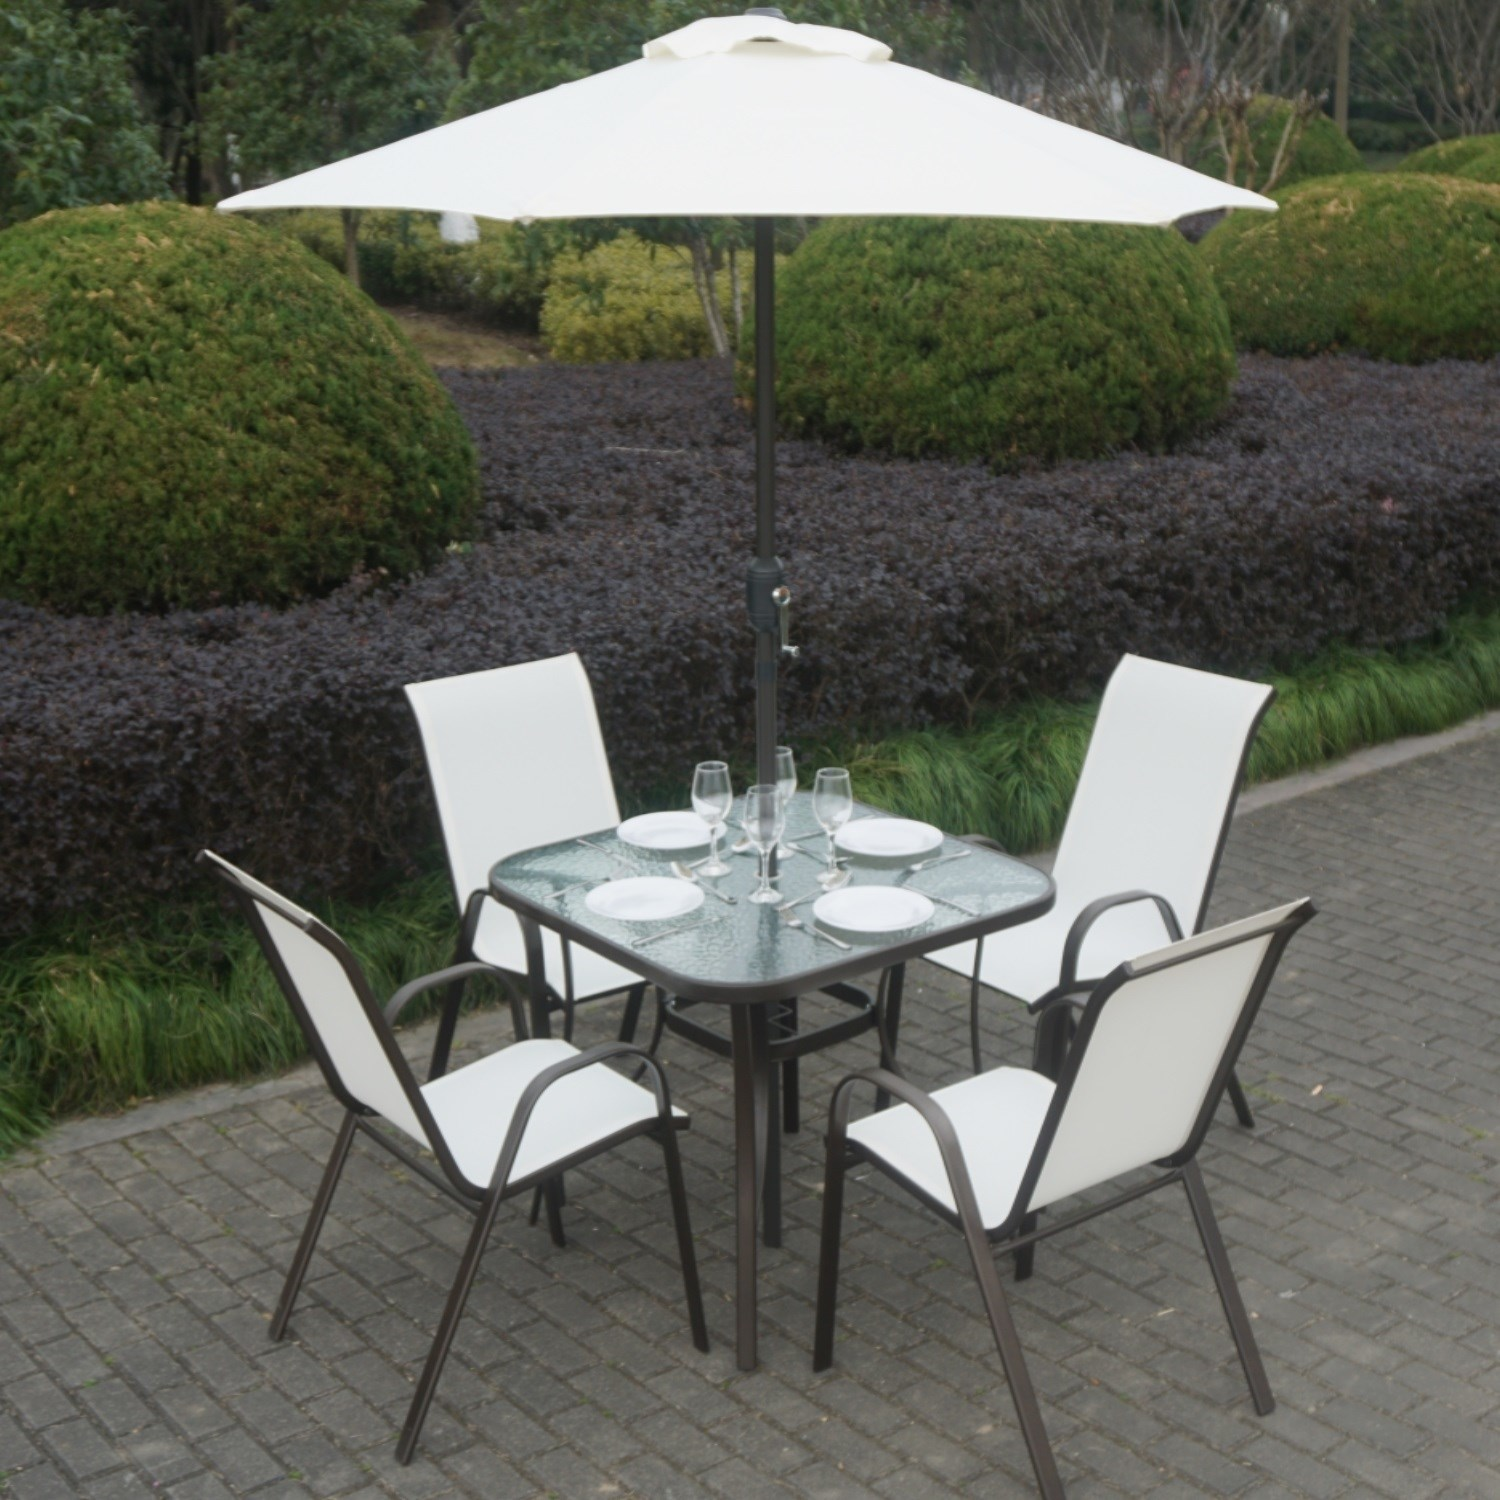 brown metal and cream 4 seater garden dining set parasol included